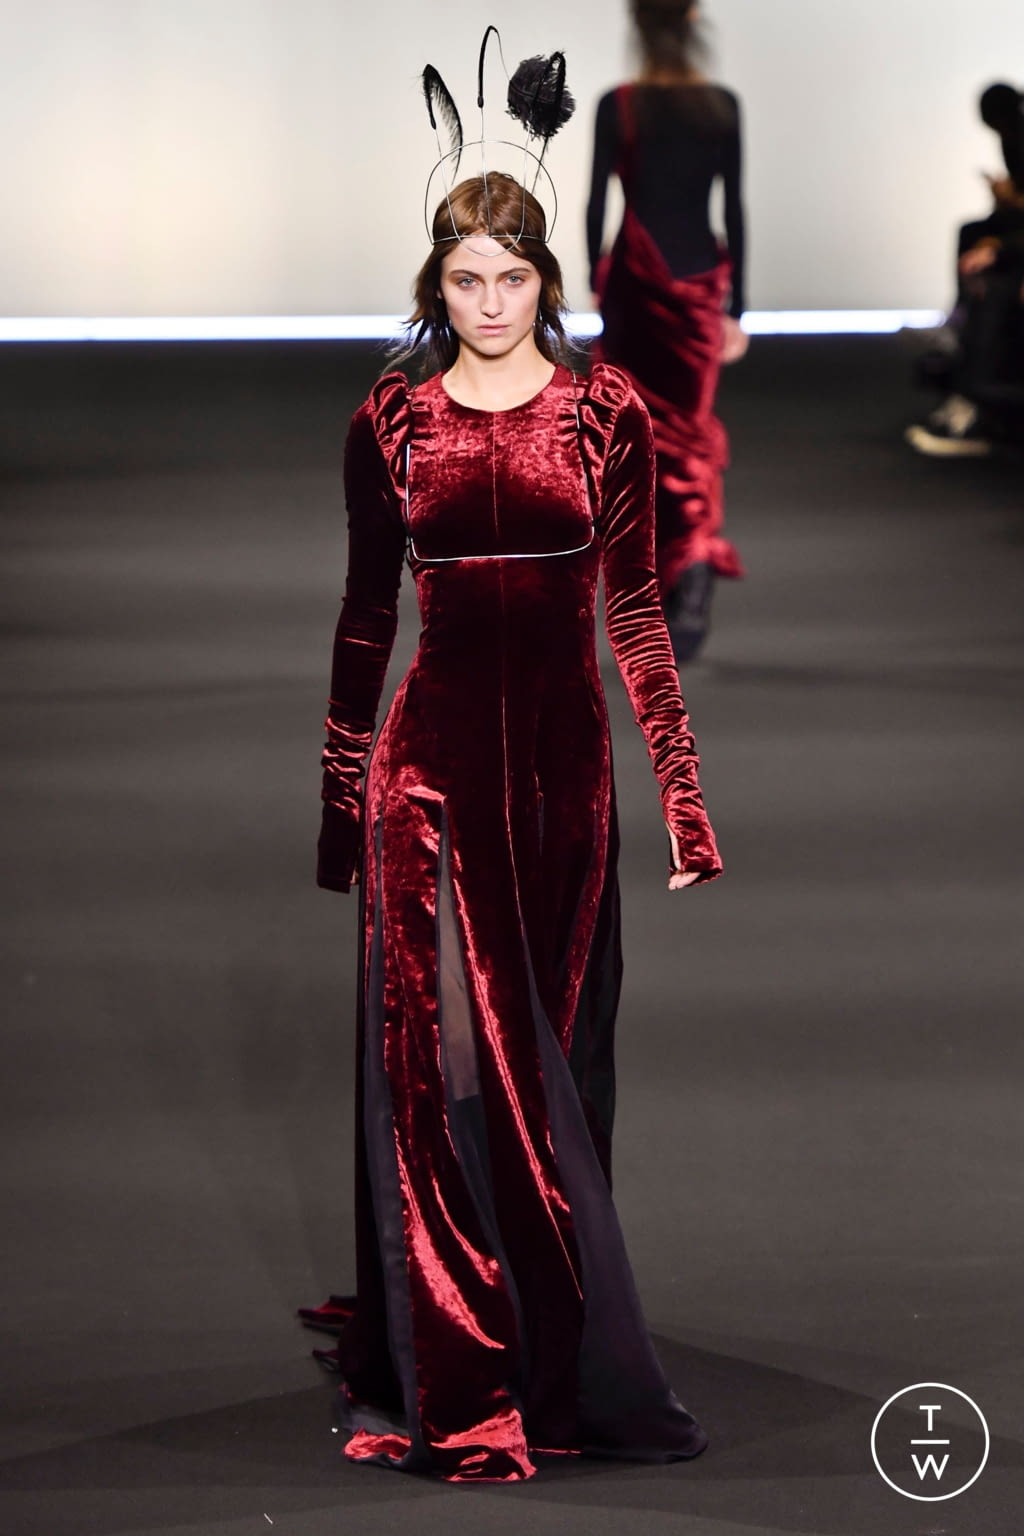 Fashion Week Paris Fall/Winter 2020 look 36 de la collection Ann Demeulemeester womenswear